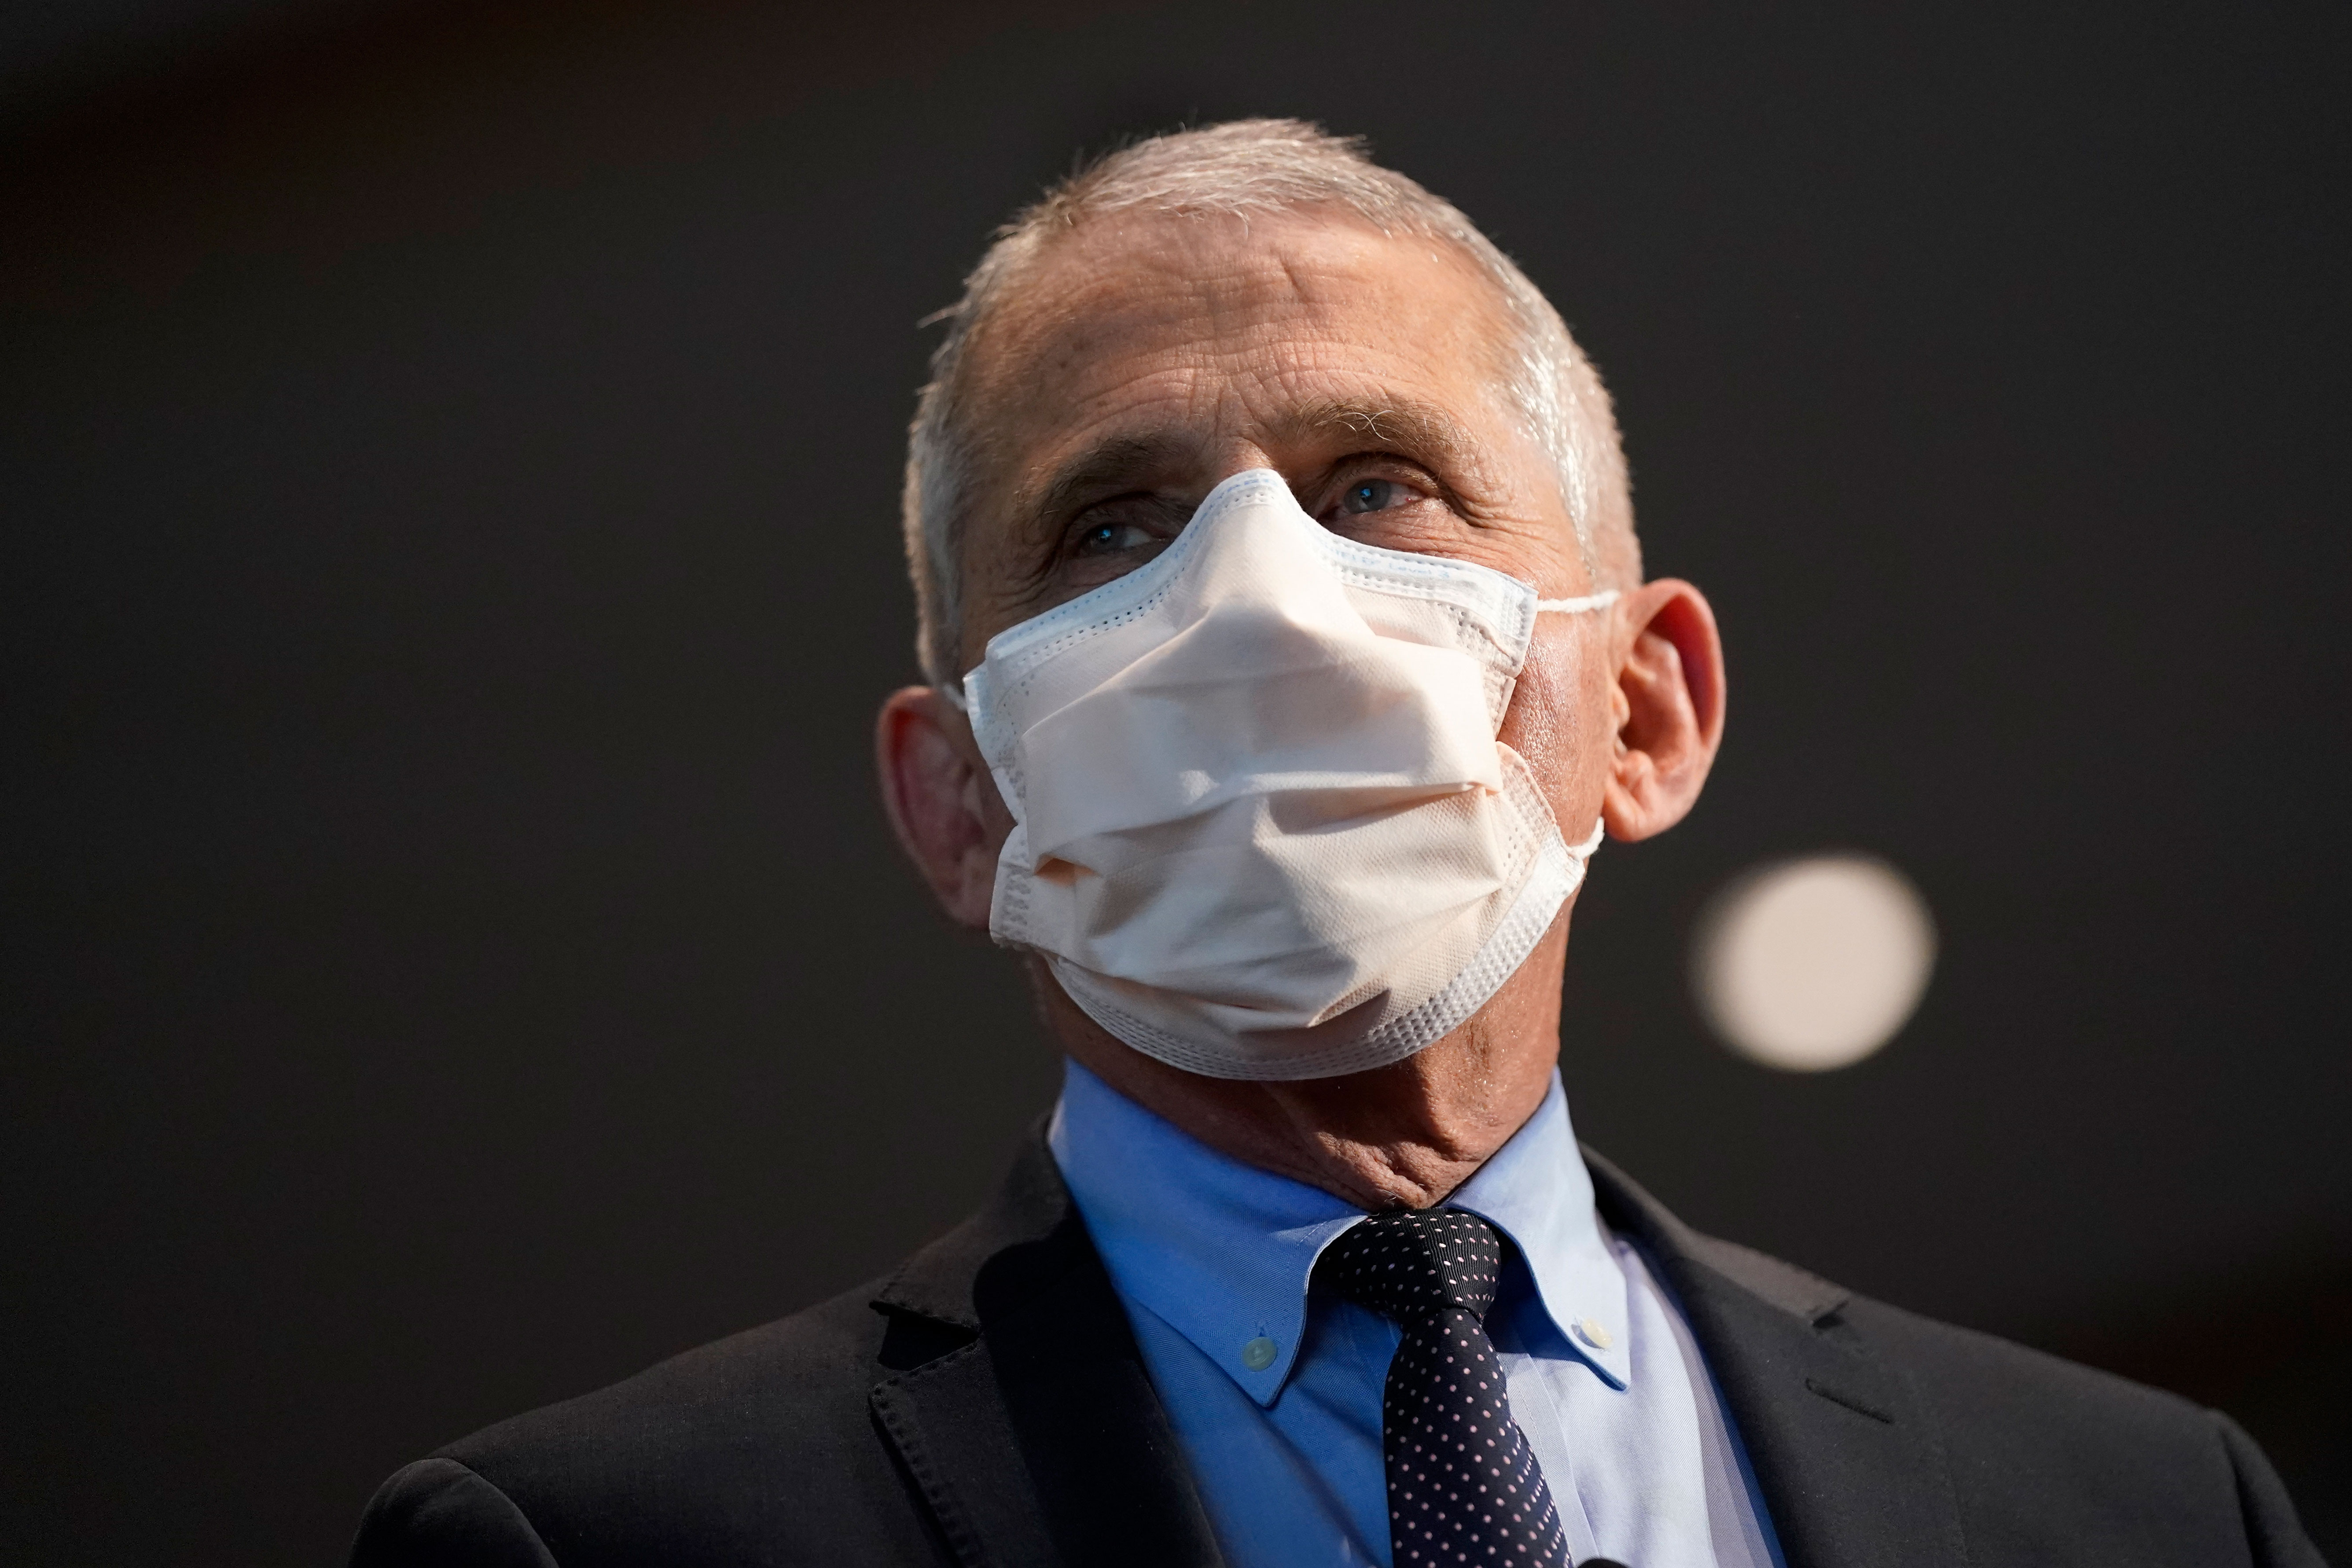 Dr. Anthony Fauci is pictured before receiving his first dose of a Covid-19 vaccine on December 22 in Bethesda, Maryland.